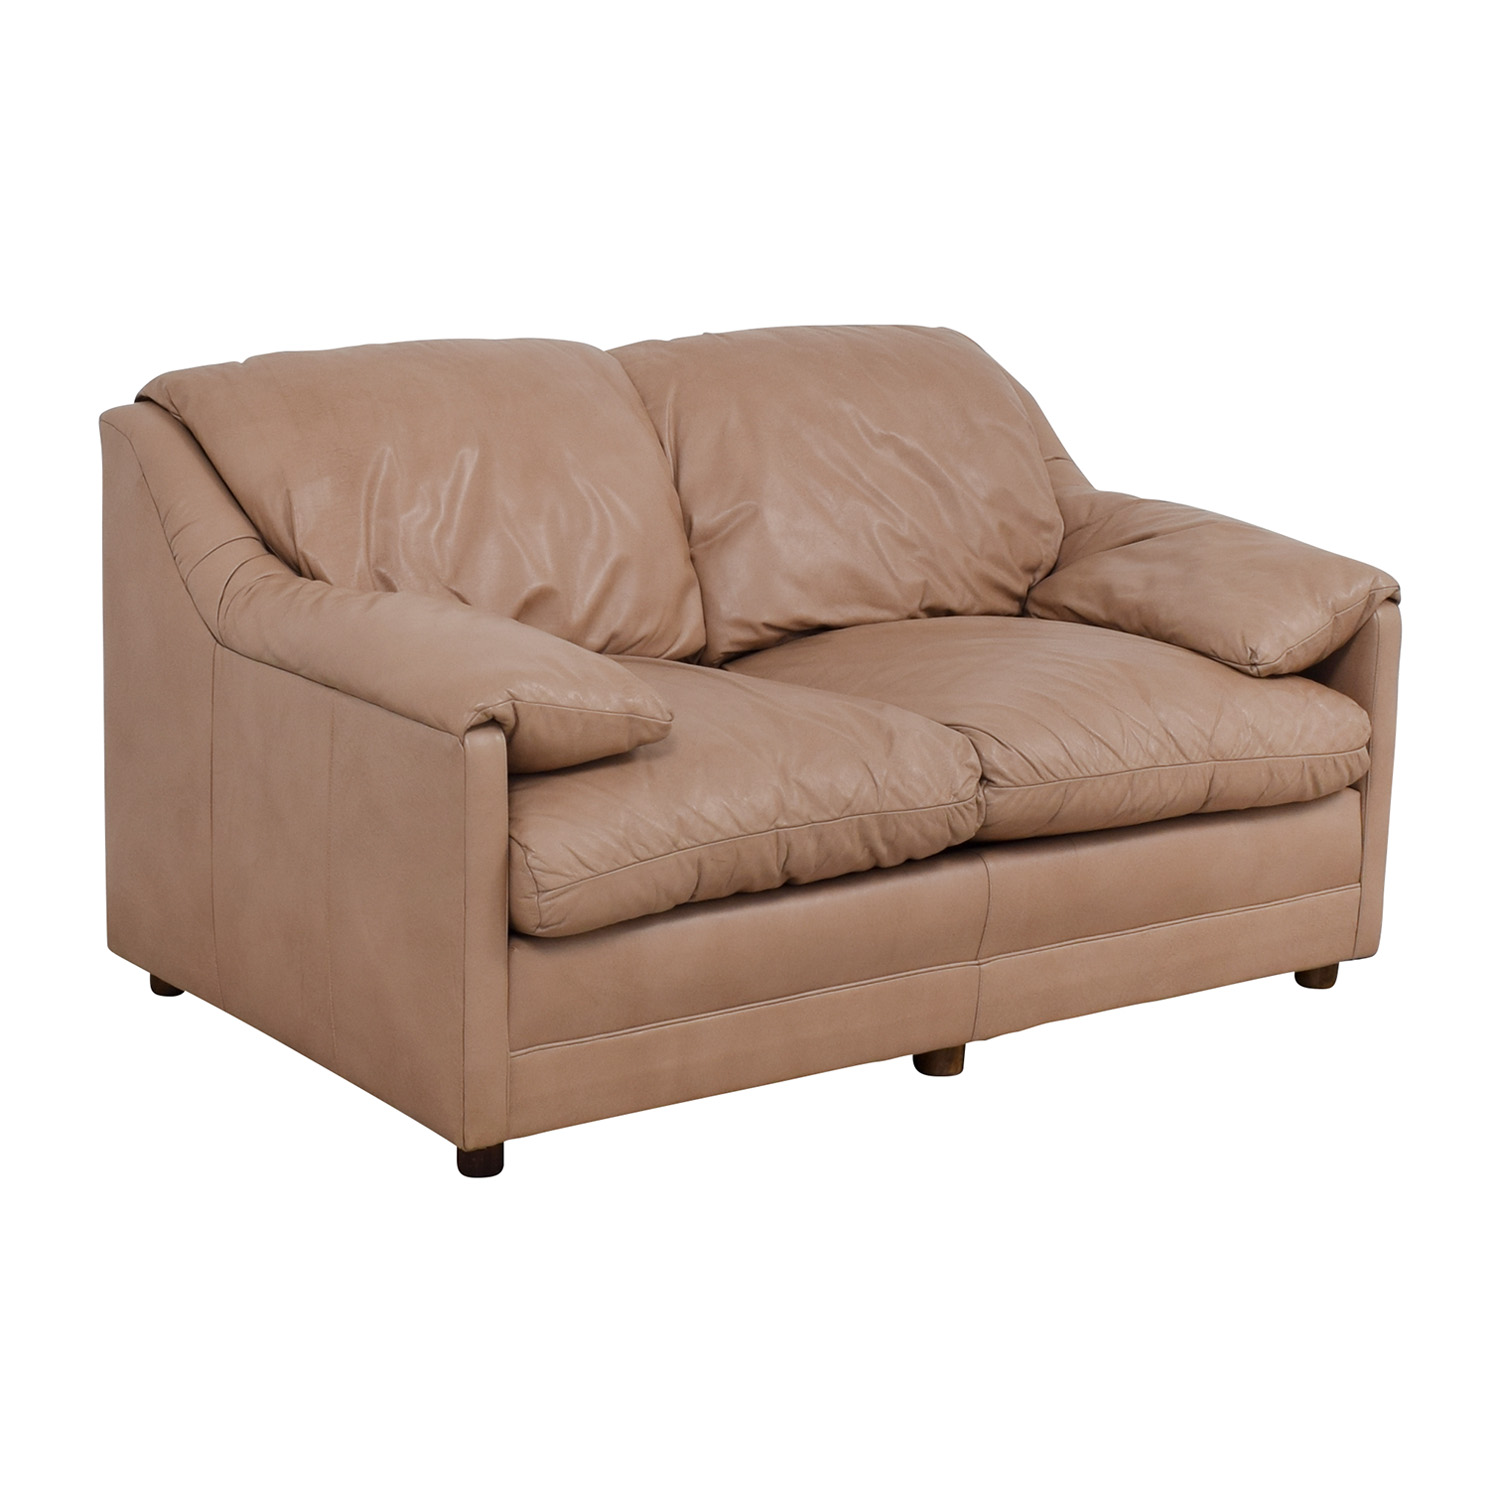 buy Hancock and Moore Hancock and Moore Leather Two Seat Love Seat online